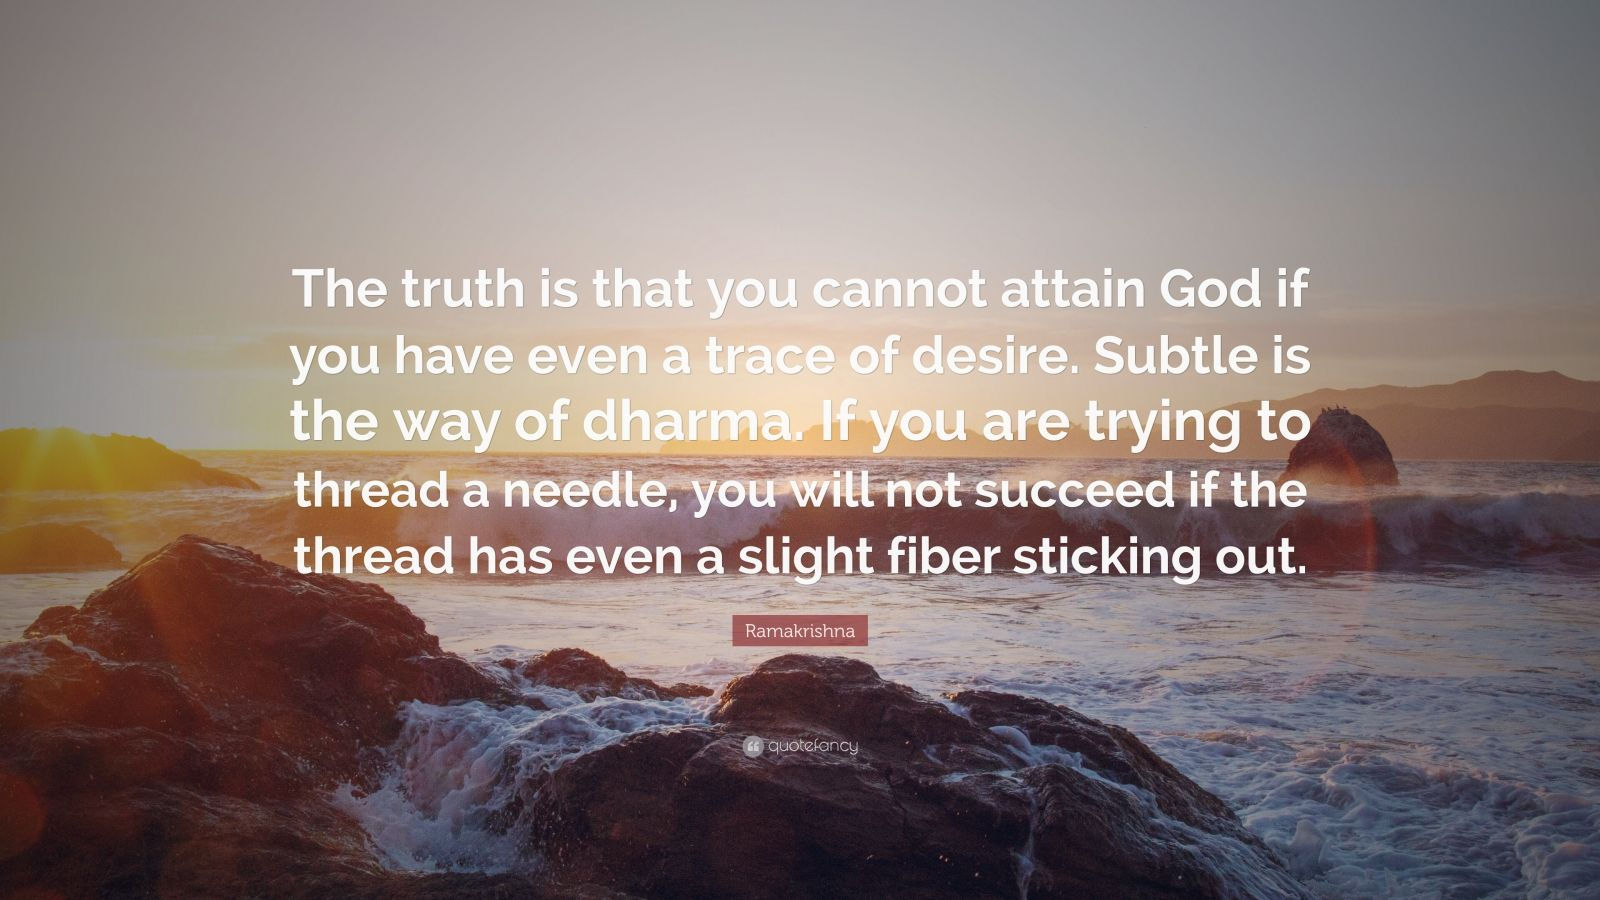 "Ramakrishna Quote: ""The truth is that you cannot attain God if you have even a trace of desire. Subtle is the way of dharma. If you are trying to thread a needle, you will not succeed if the thread has even a slight fiber sticking out."""